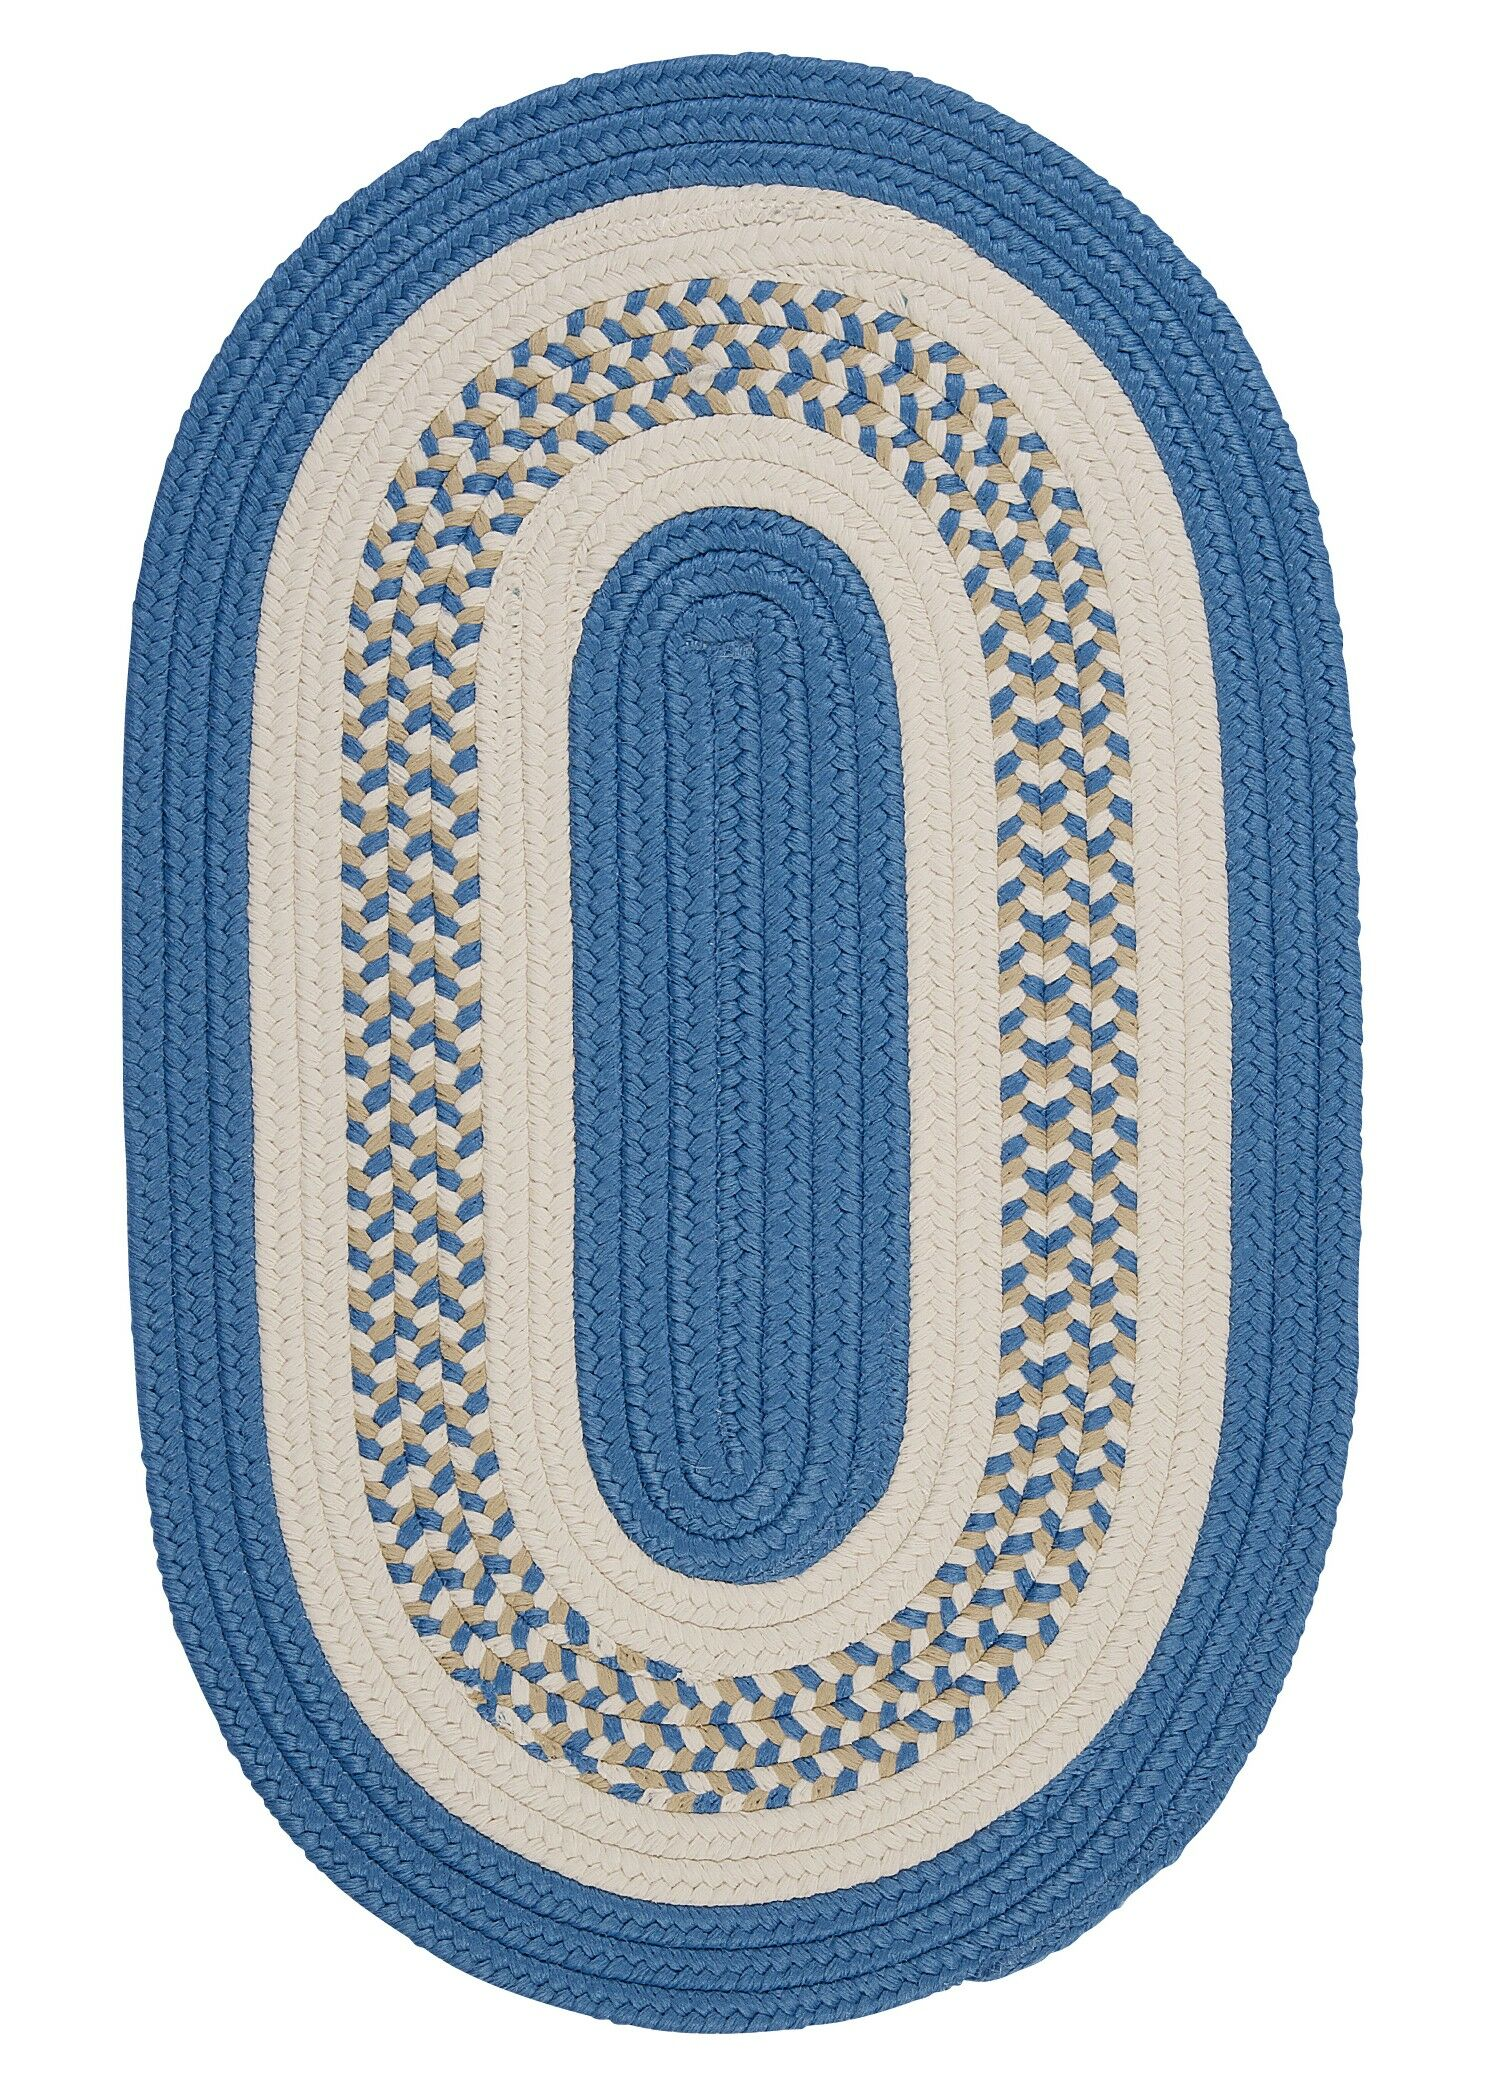 Germain Blue/Beige Indoor/Outdoor Area Rug Rug Size: Oval 3' x 5'